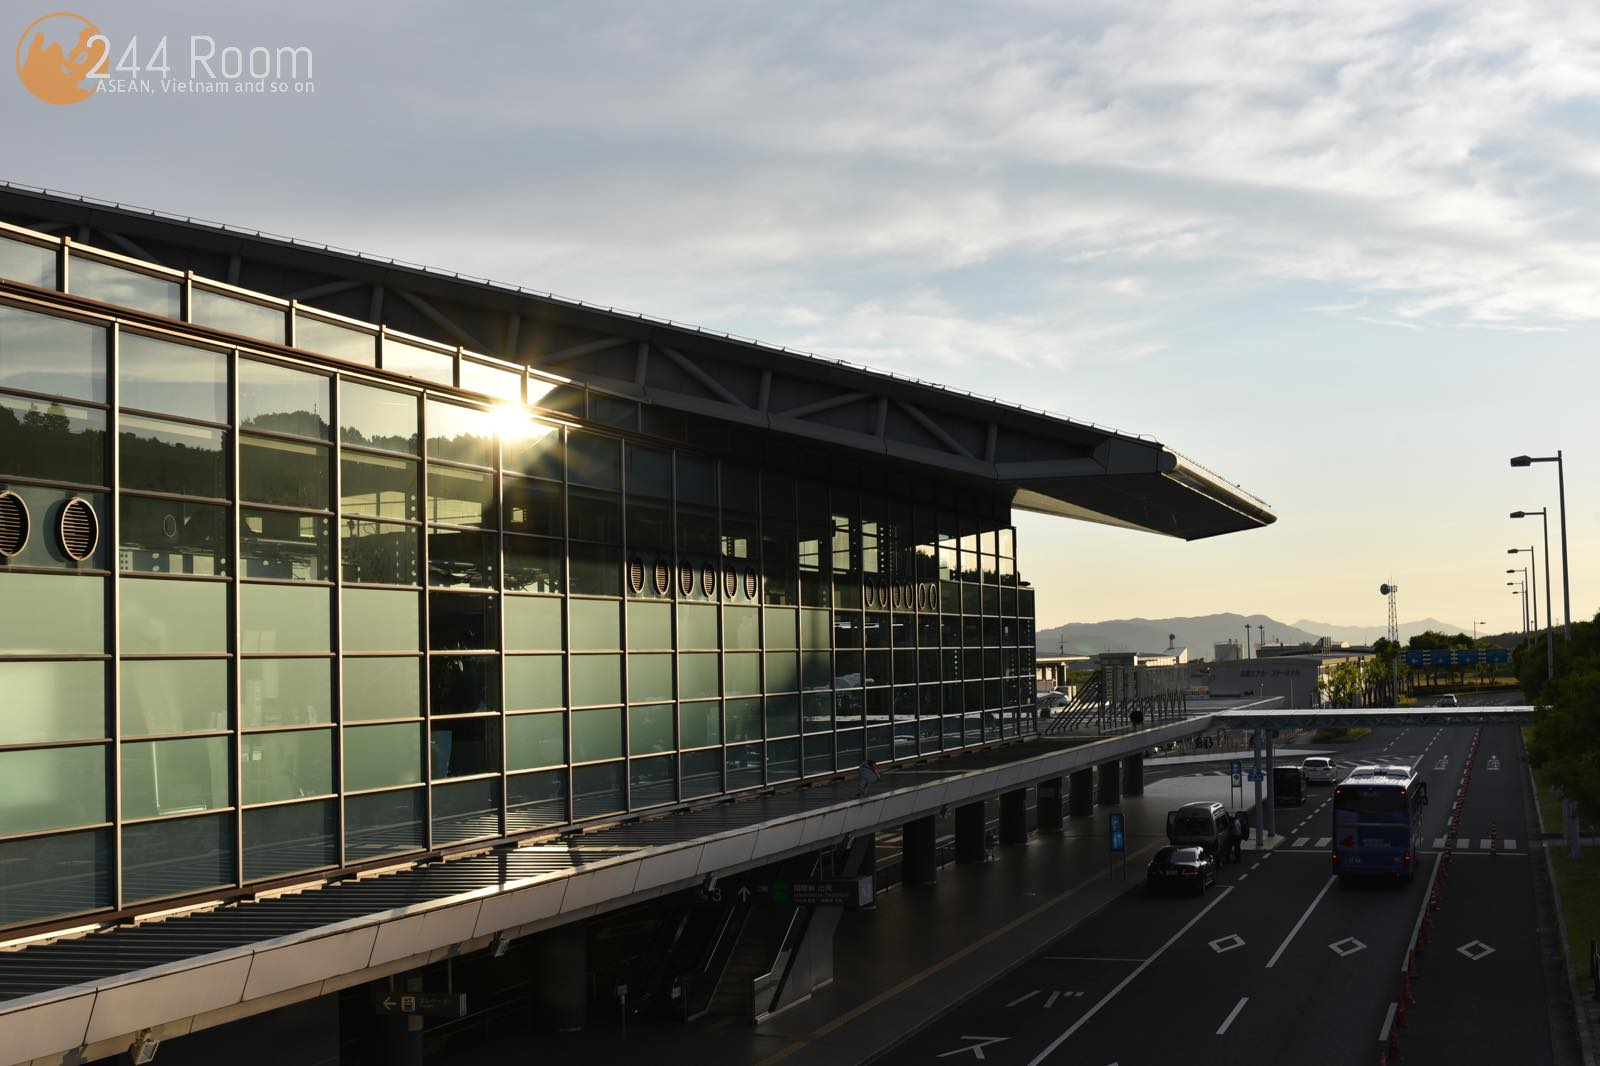 広島空港 Hiroshima International Airport2